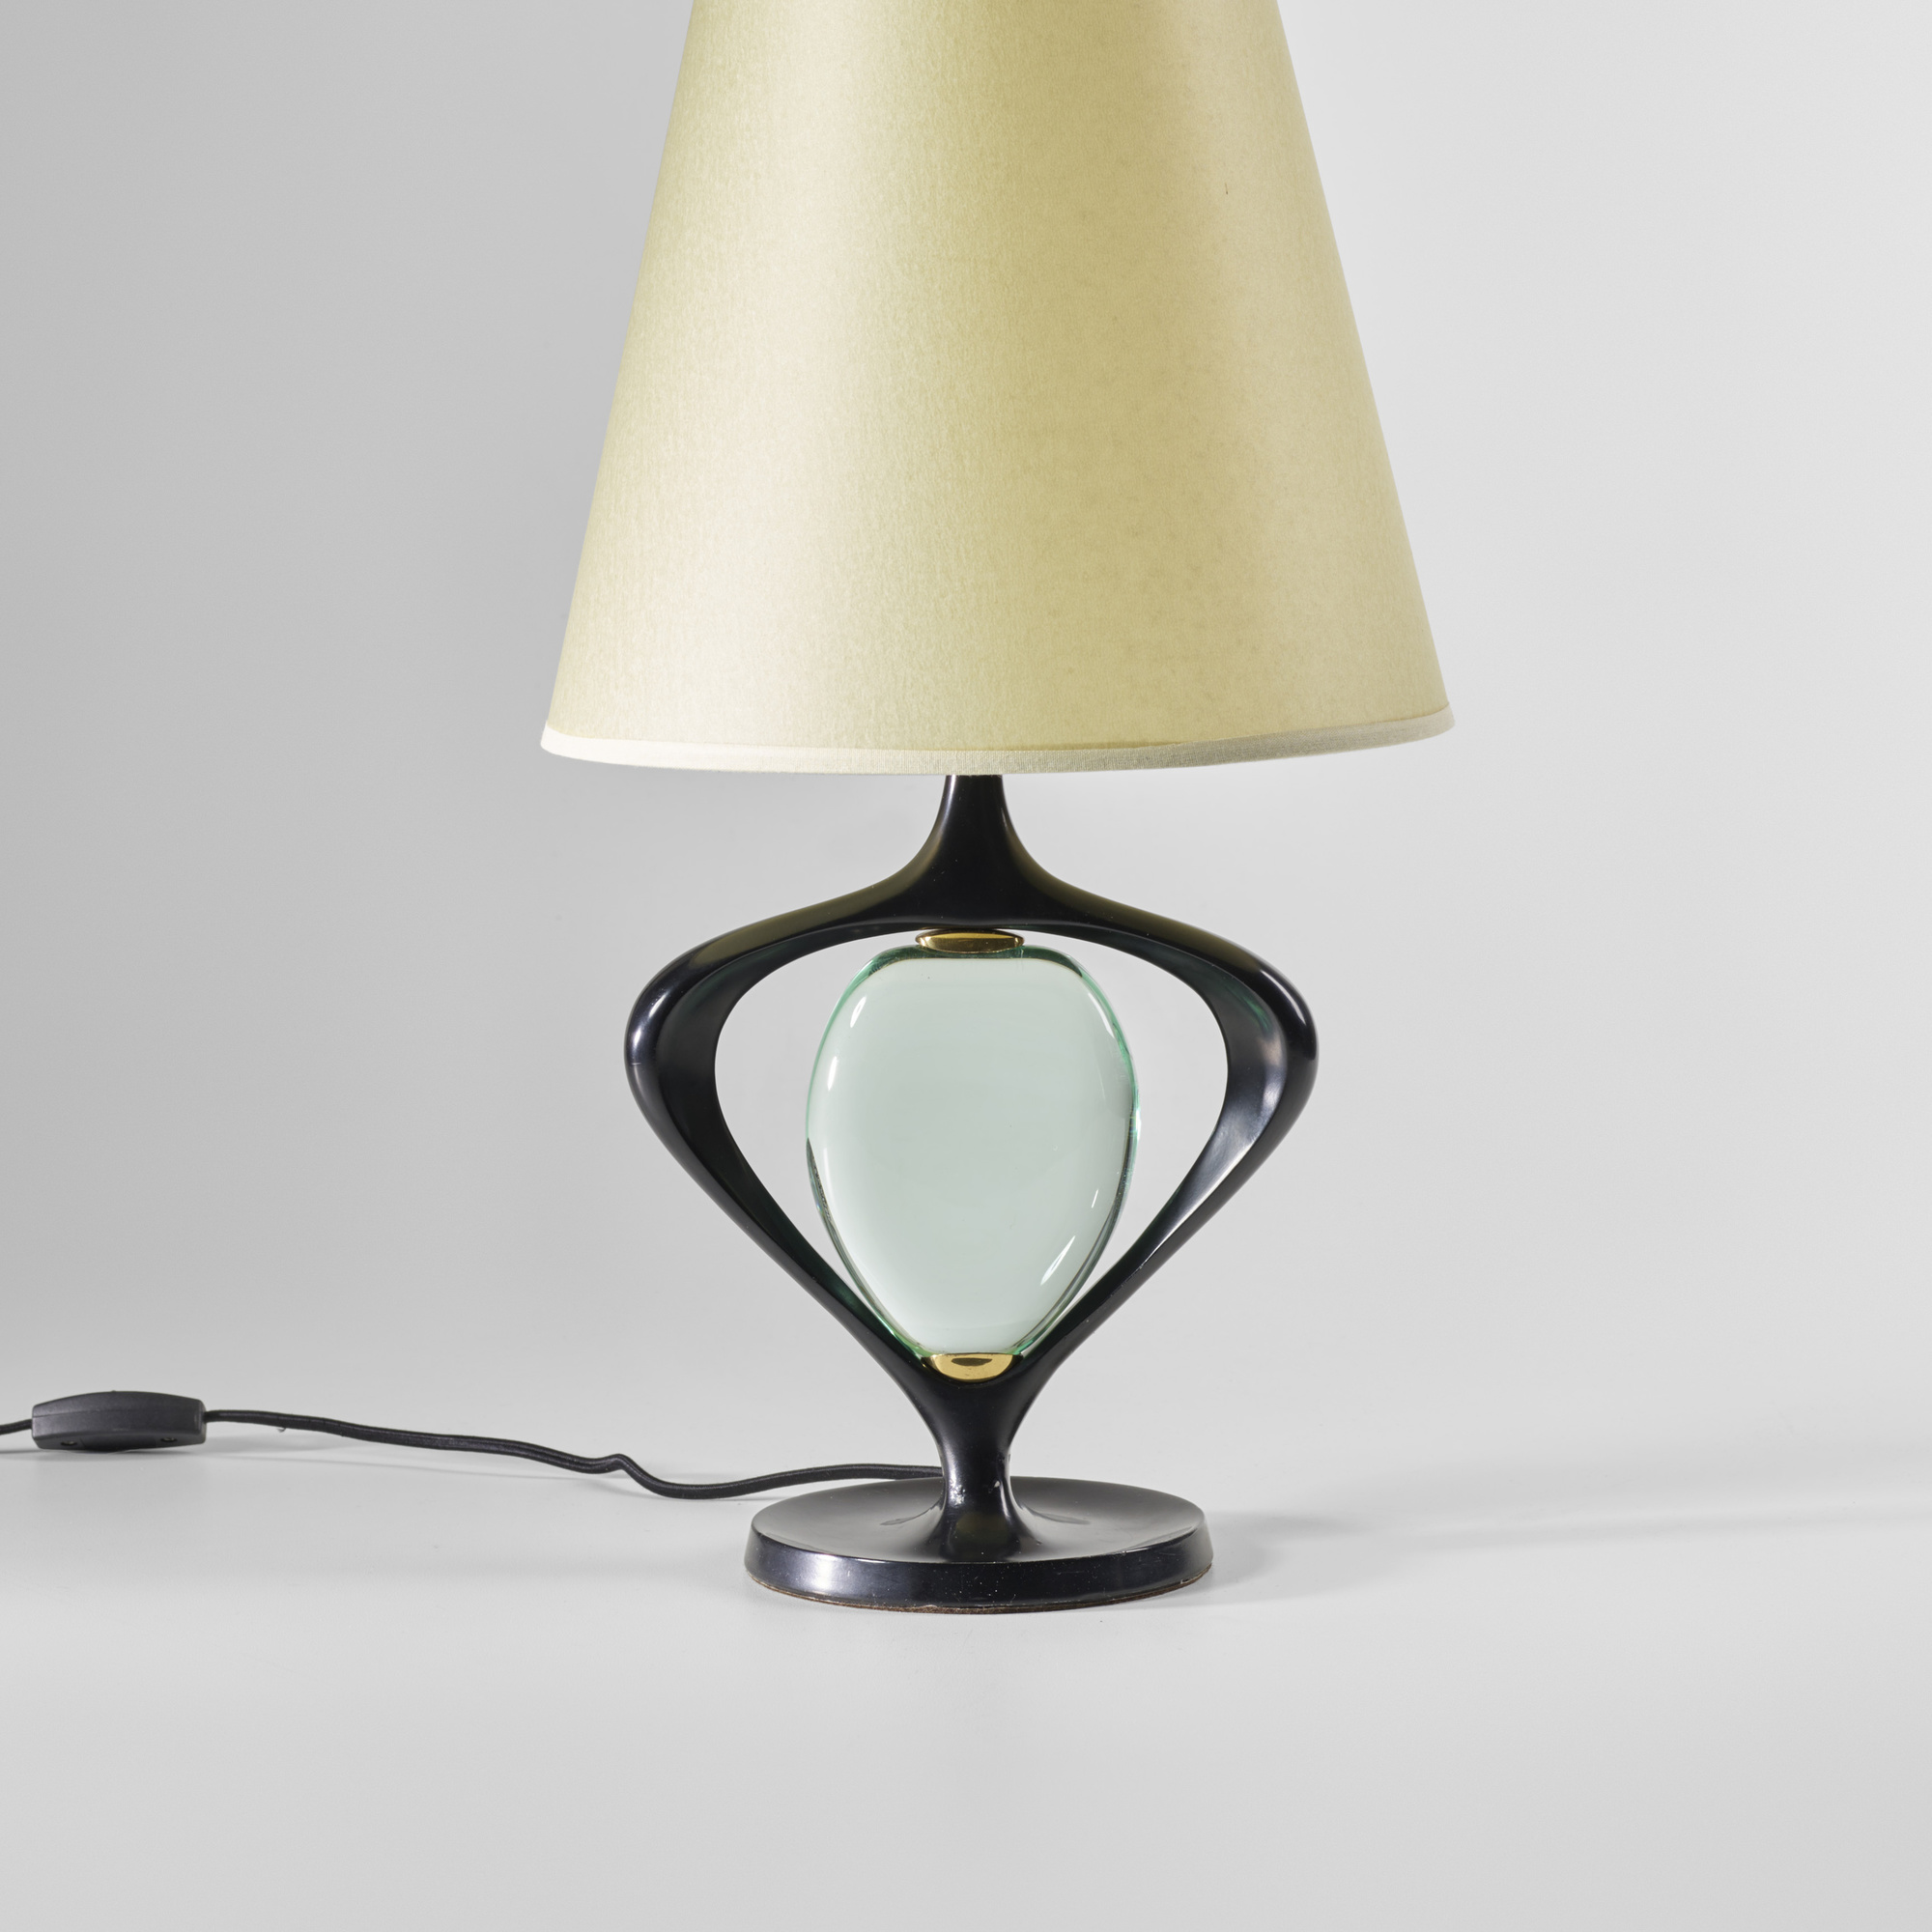 15: Max Ingrand / Rare table lamp (2 of 2)